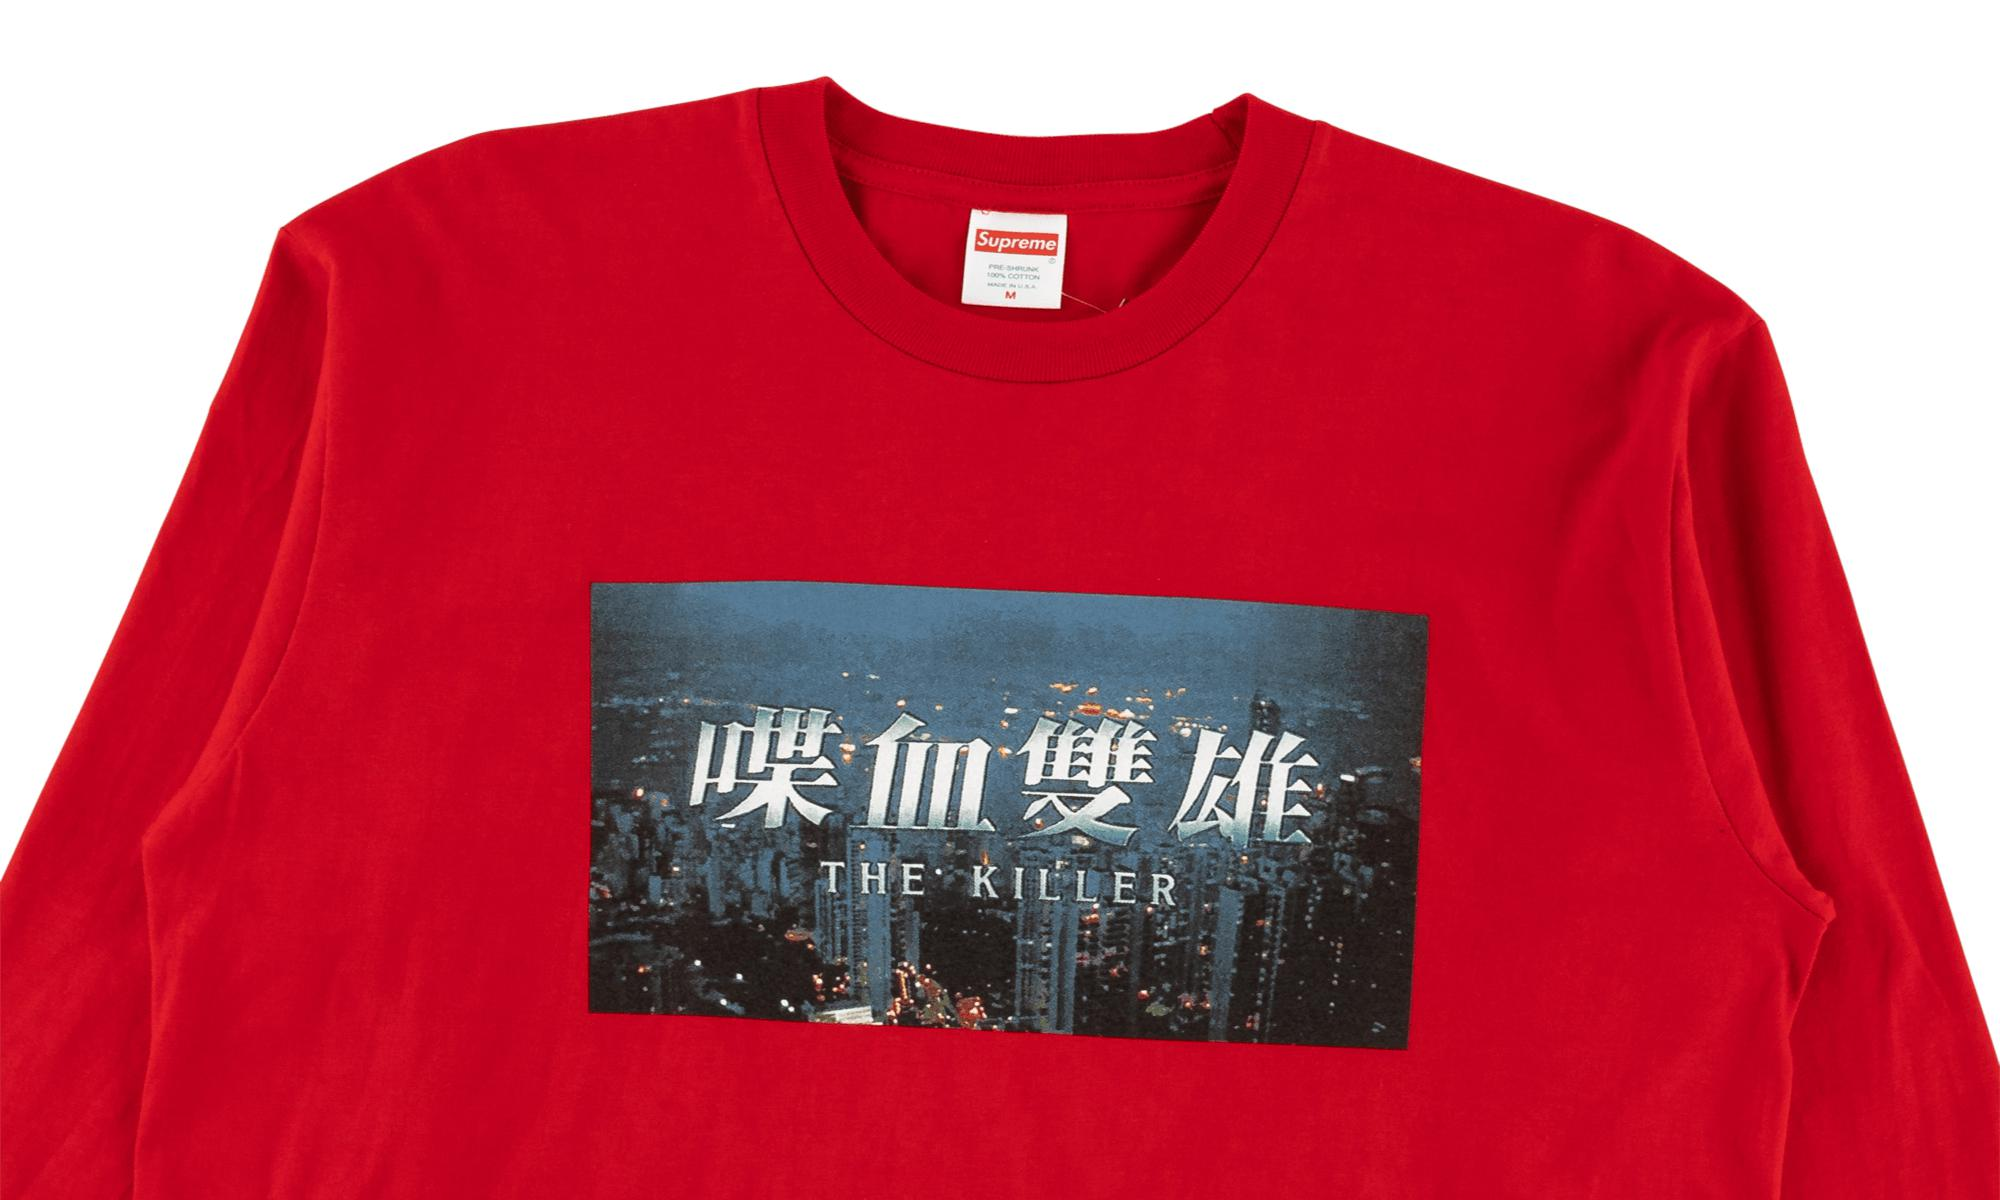 bce0dd8e4d55 Supreme The Killer L/s Tee in Red for Men - Lyst